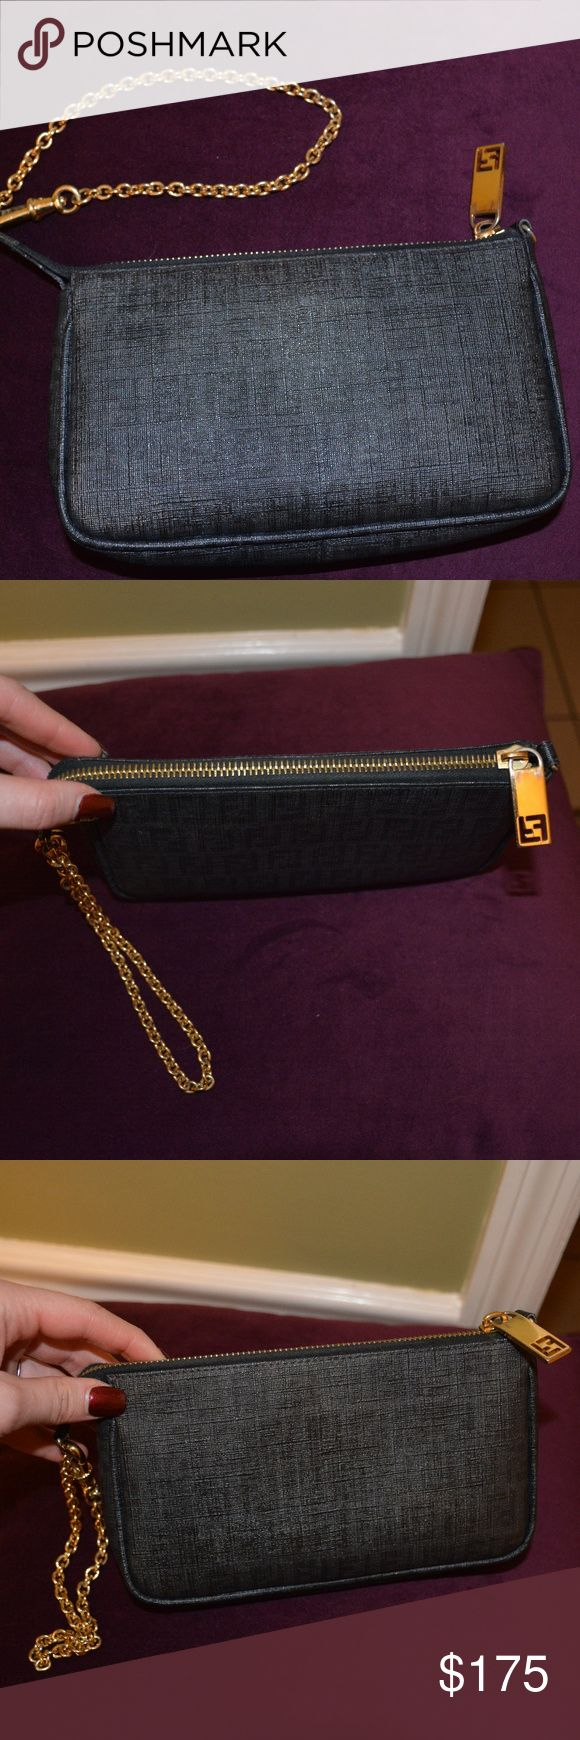 "FENDI ""Forever"" Zucchino Pouchette clutch/wristlet Authentic FENDI clutch with classic, subtle FENDI logos 7.5"" x 4.25"" x 1.25"" Gold hardware includes wristlet chain and 1.5"" gold zipper handle with FENDI logo Includes label of authenticity, RFID label and ""FENDI Made in Italy"" label attached to inside cloth (all pictured) Inside includes open credit card pocket (pictured) Very gently used and in great shape with durable leather! Signs of wear on zipper and zipper handle - functions well but…"